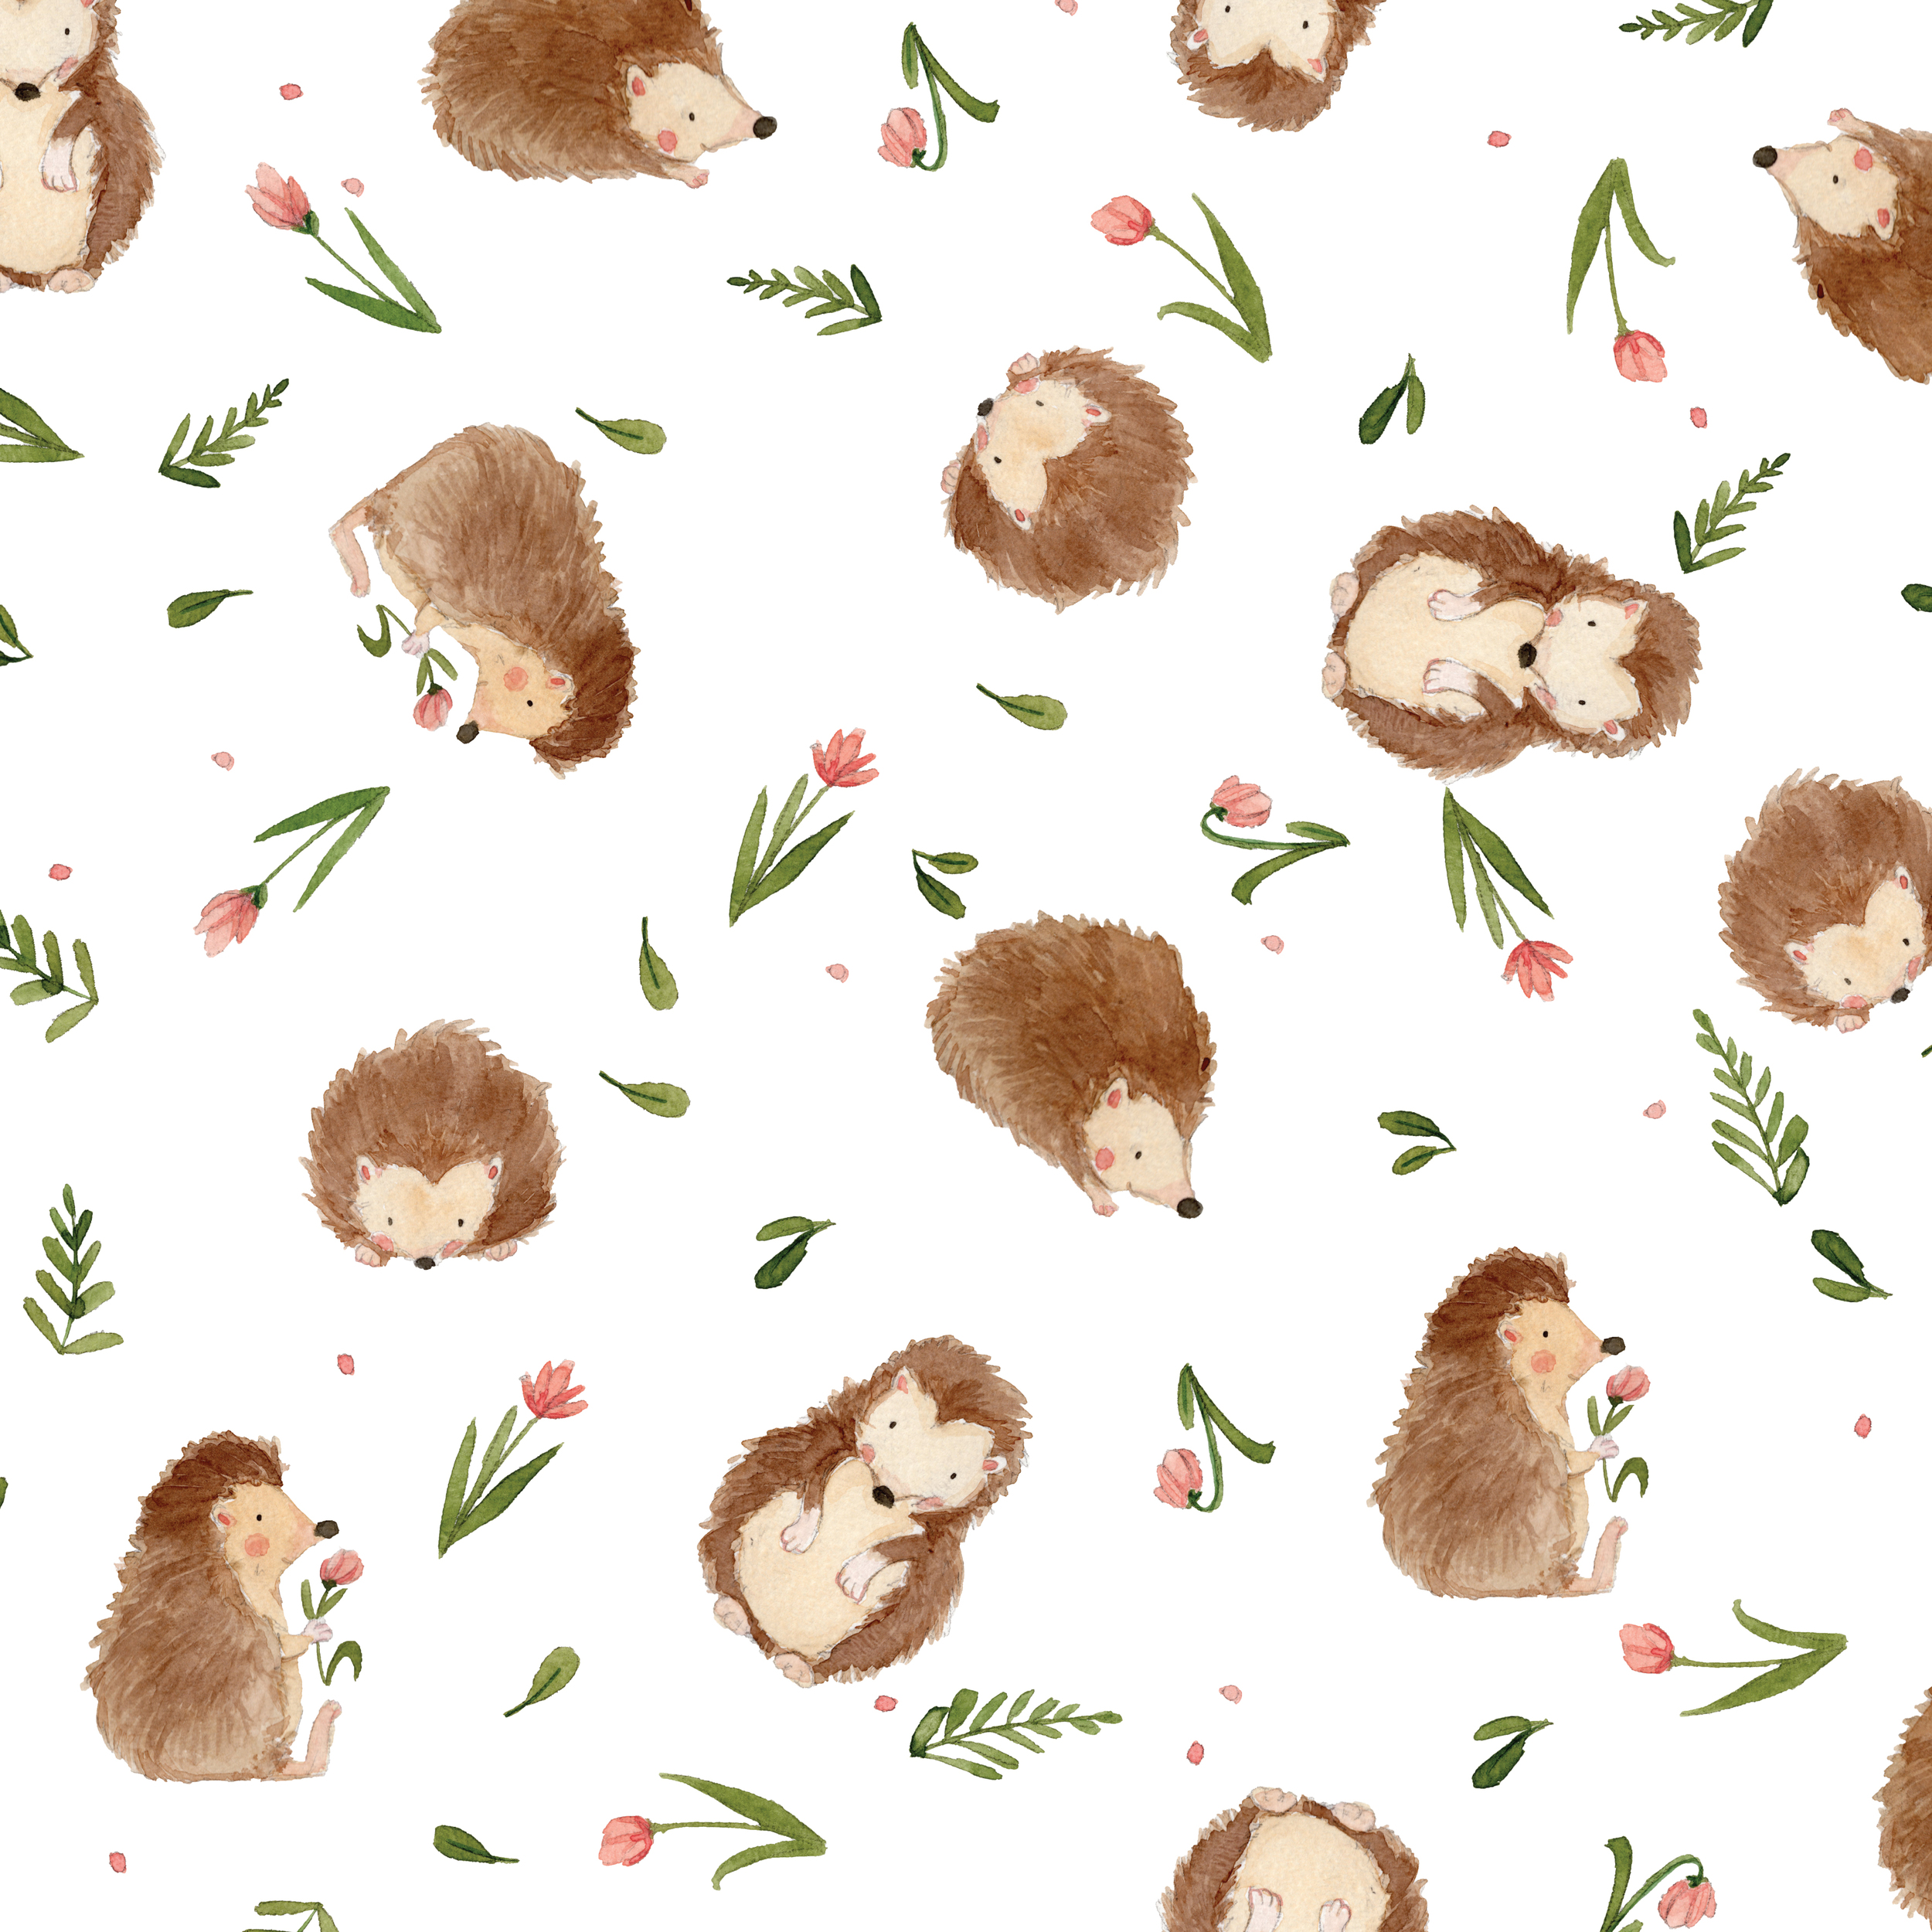 Hedge Hog Pattern-01.jpg